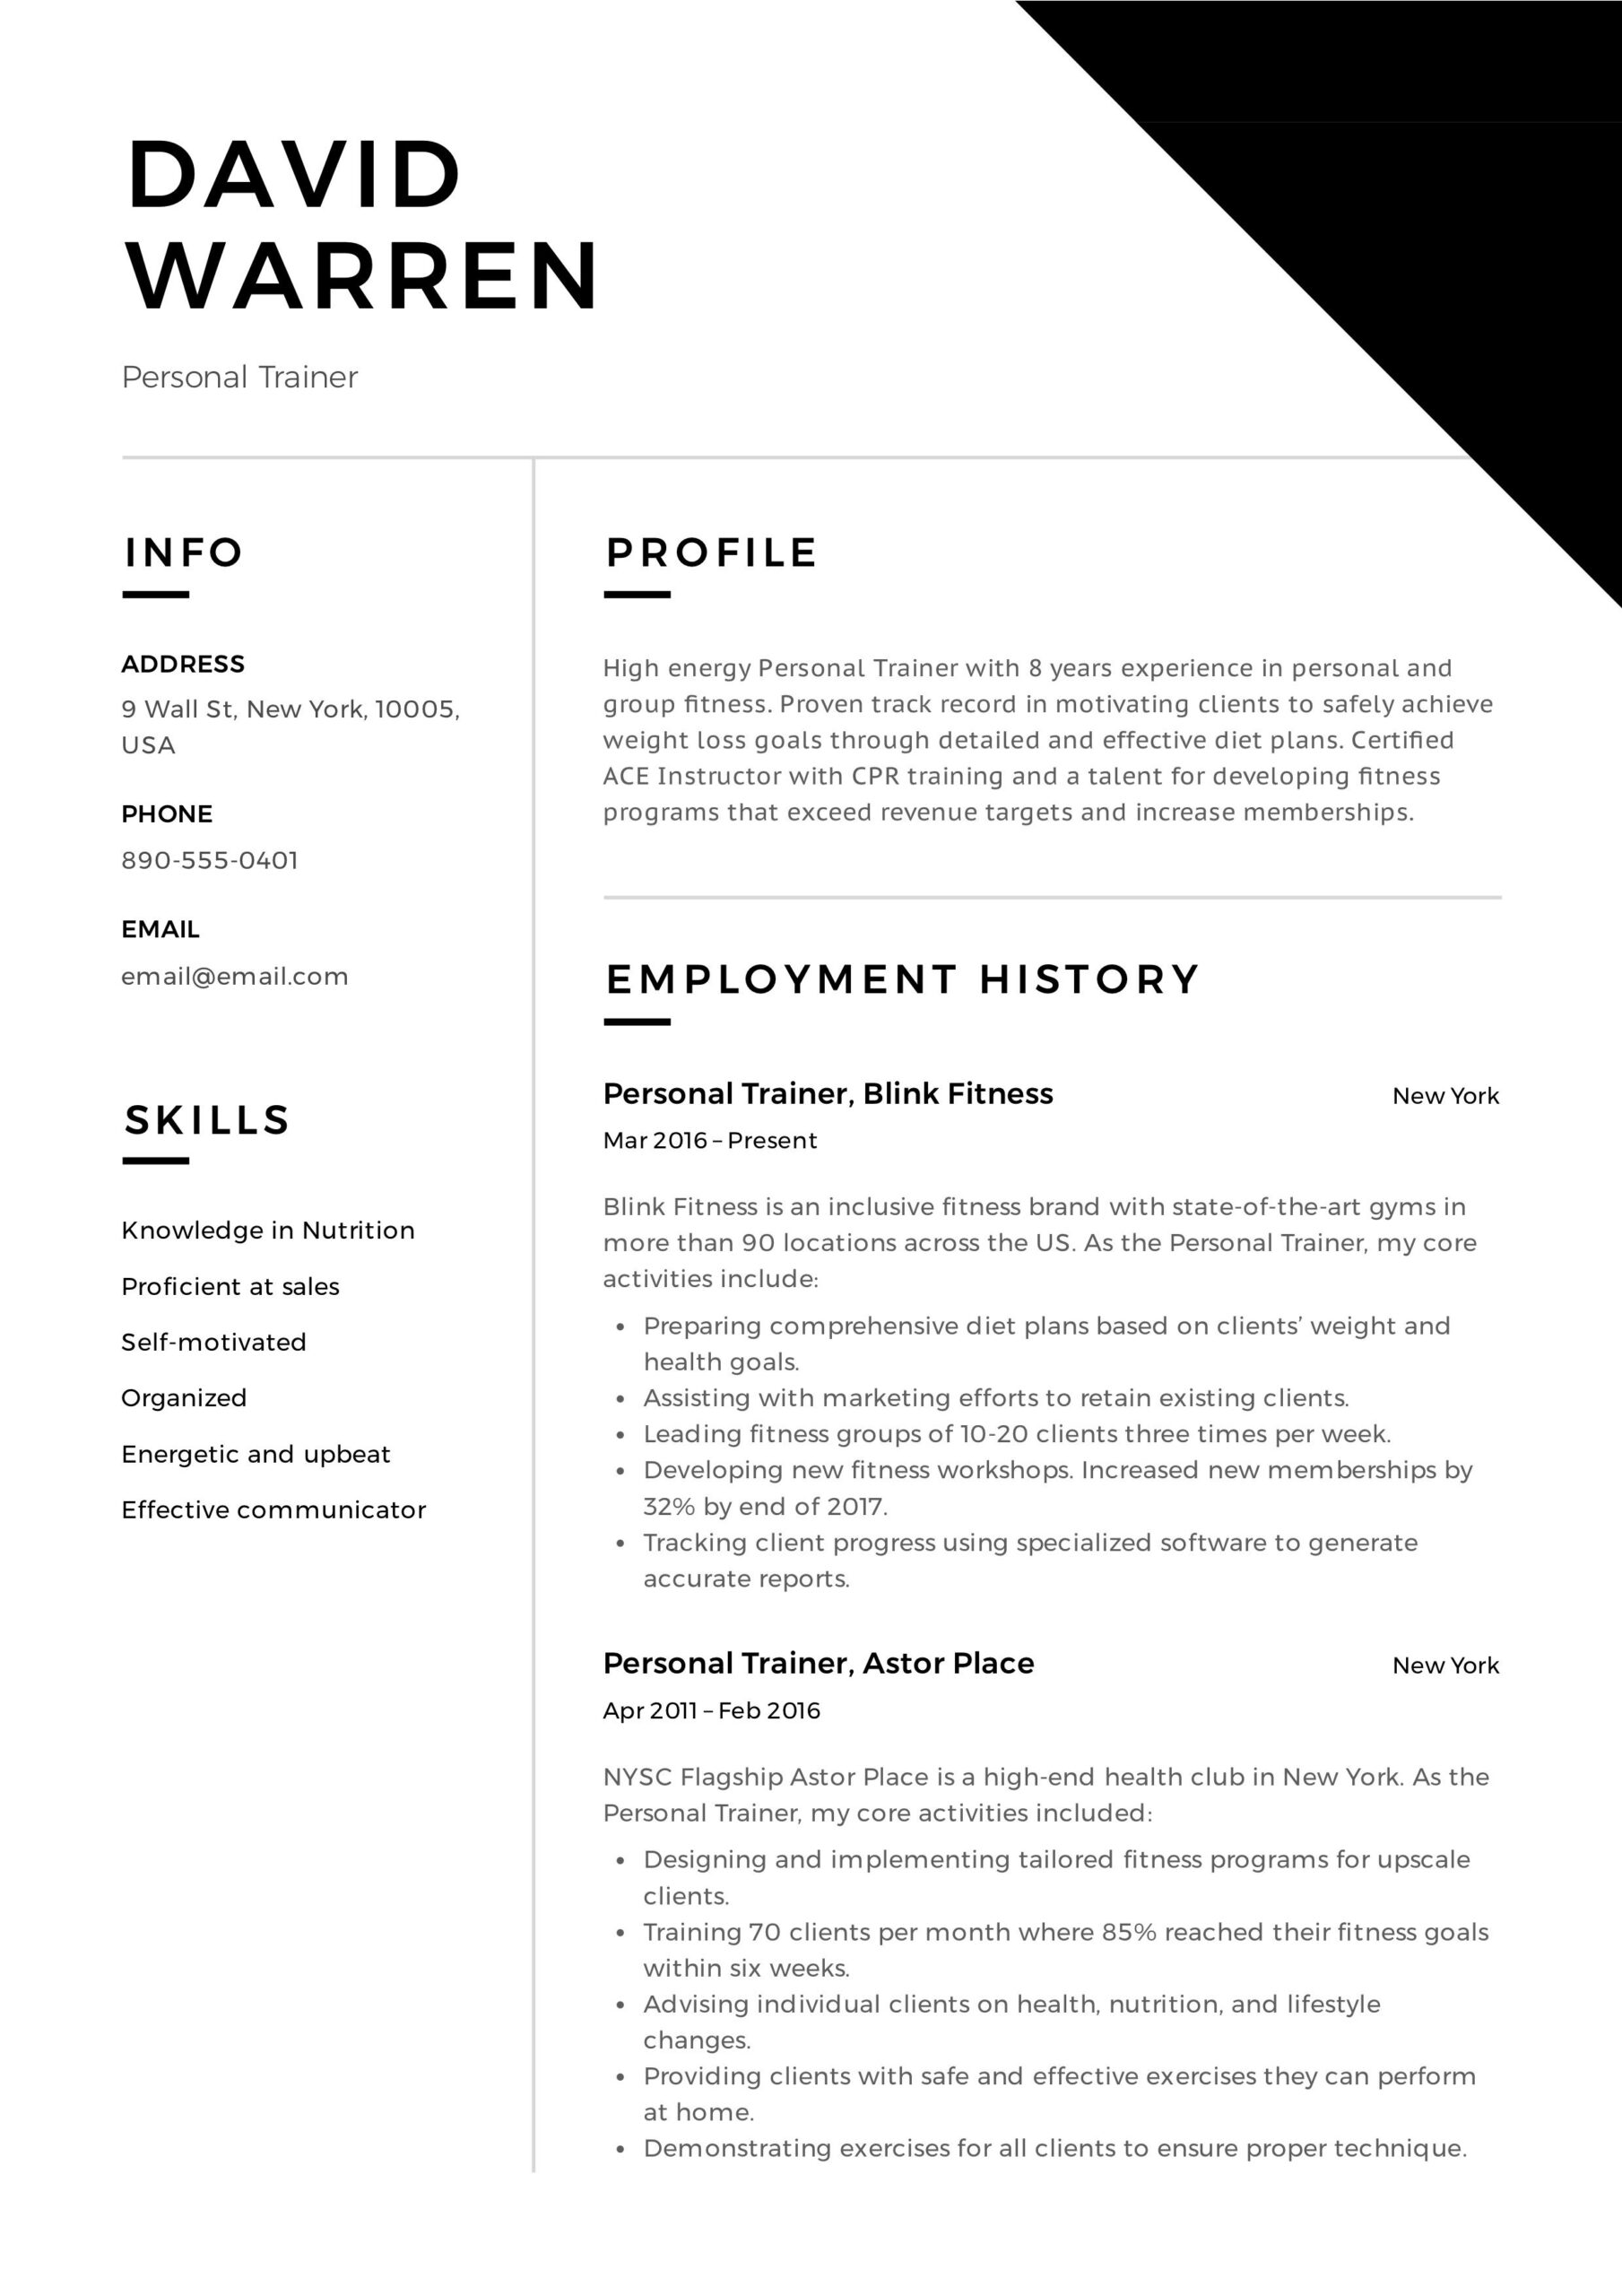 personal trainer resume event planner professional examples skills for supply chain Resume Trainer Skills For Resume